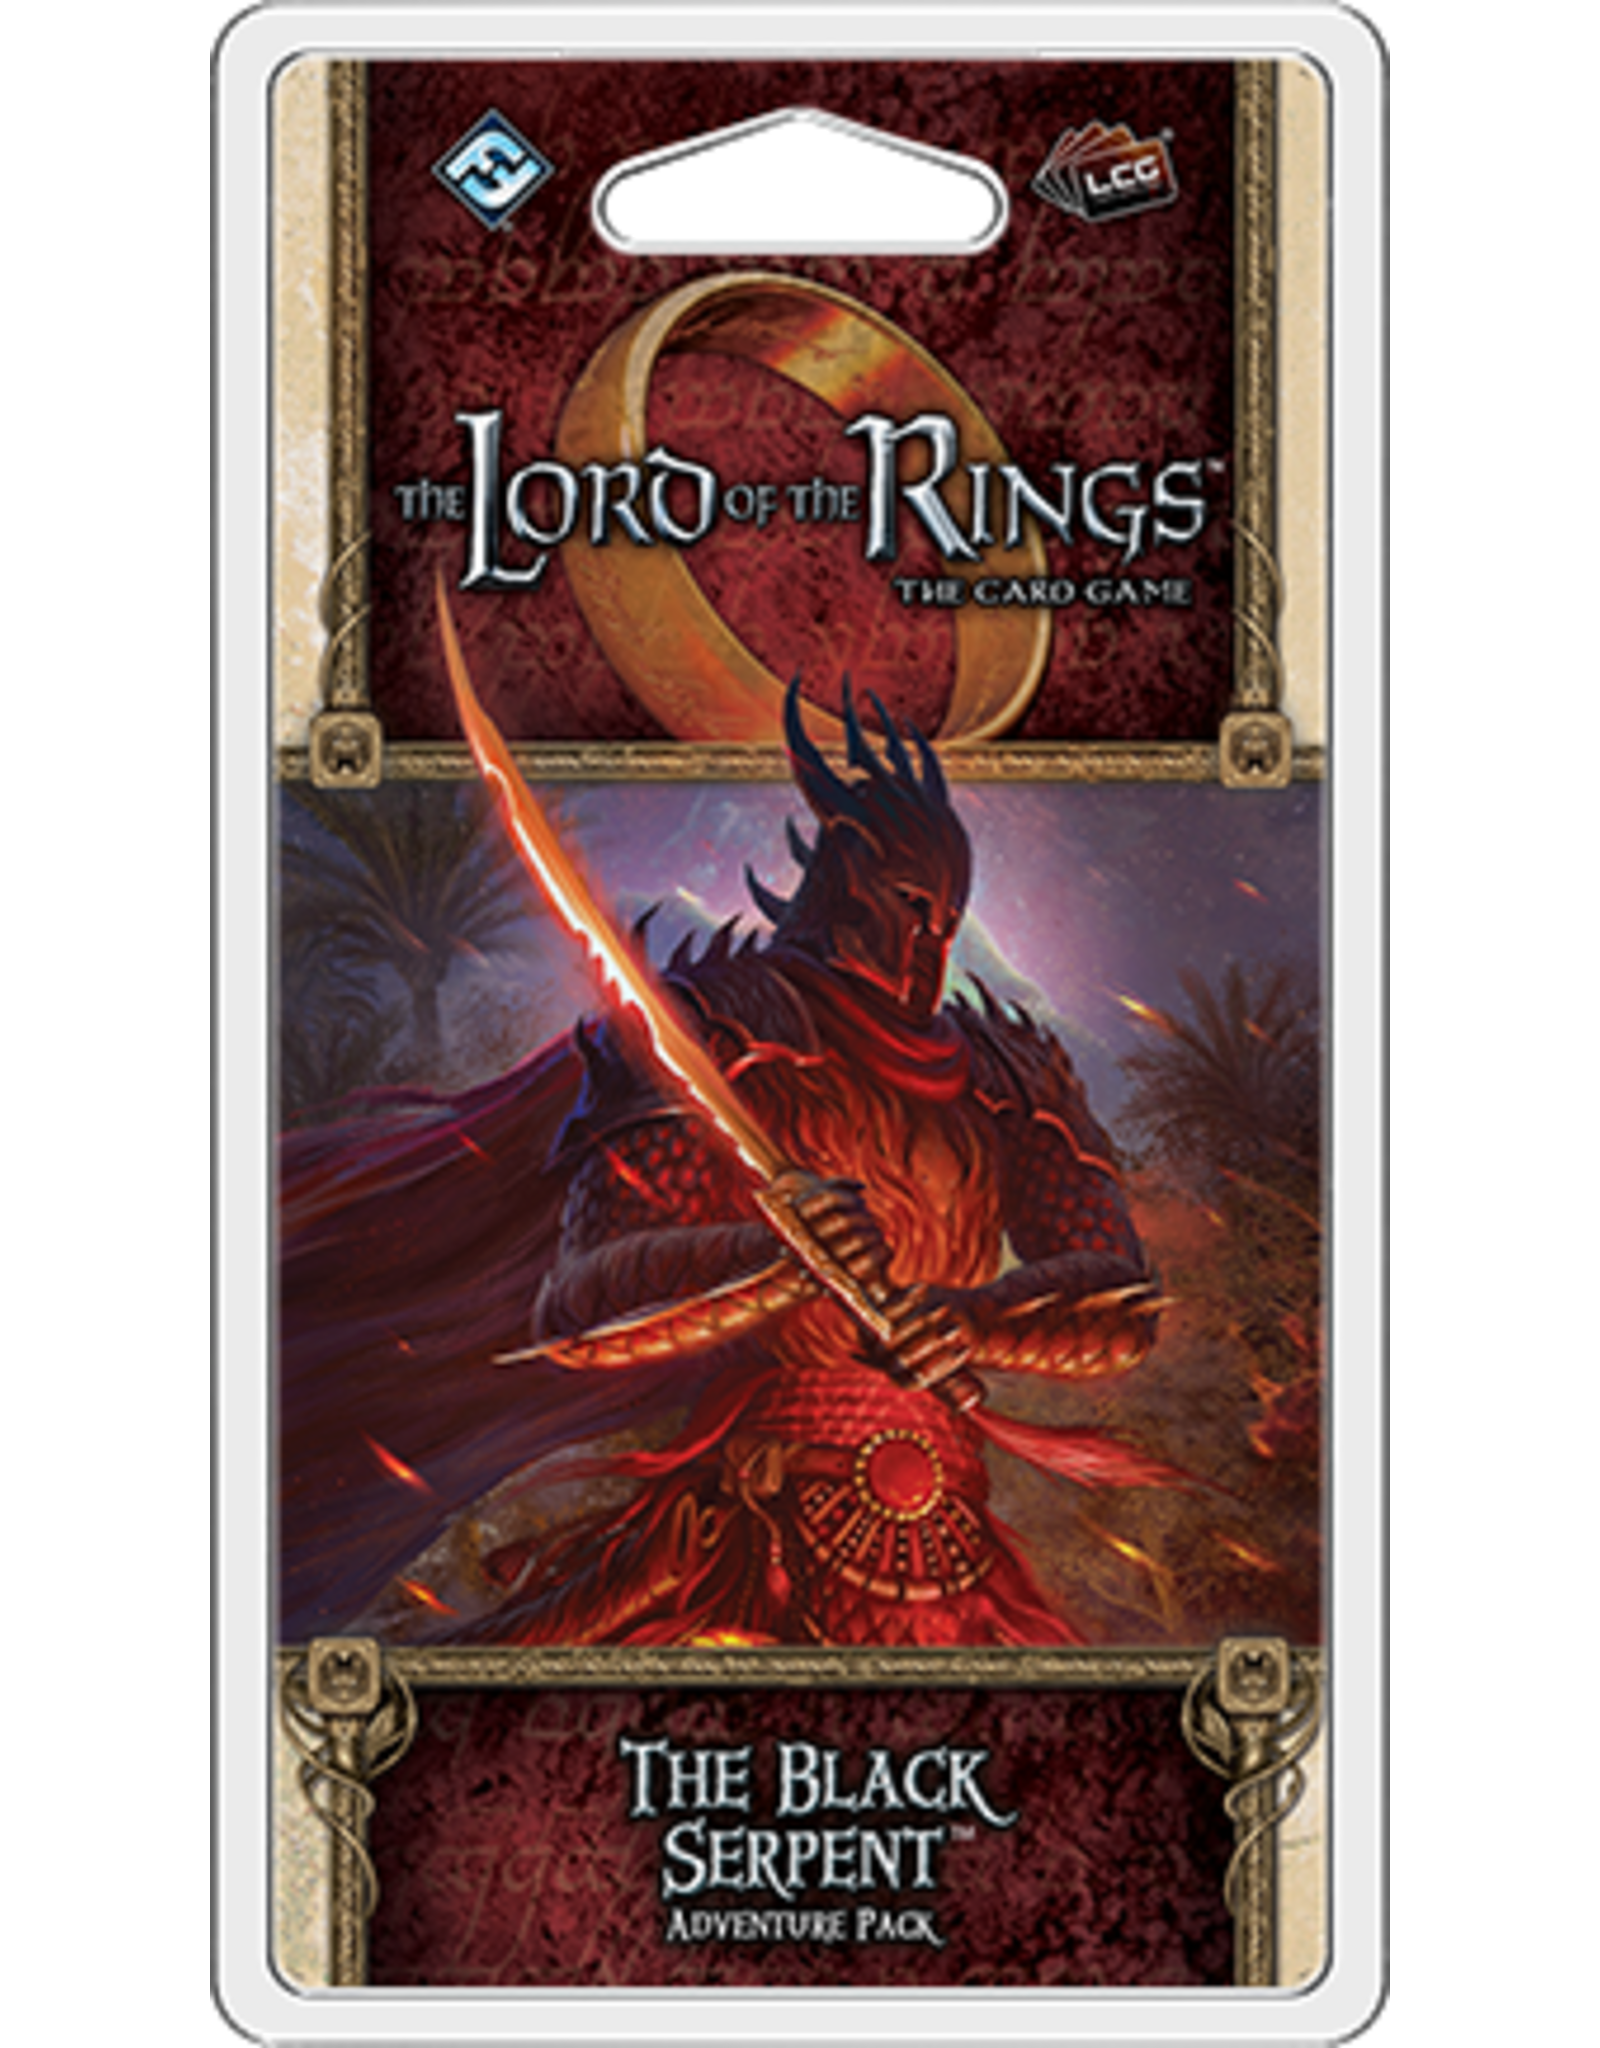 Lord of the Rings LCG The Black Serpent Adventure Pack